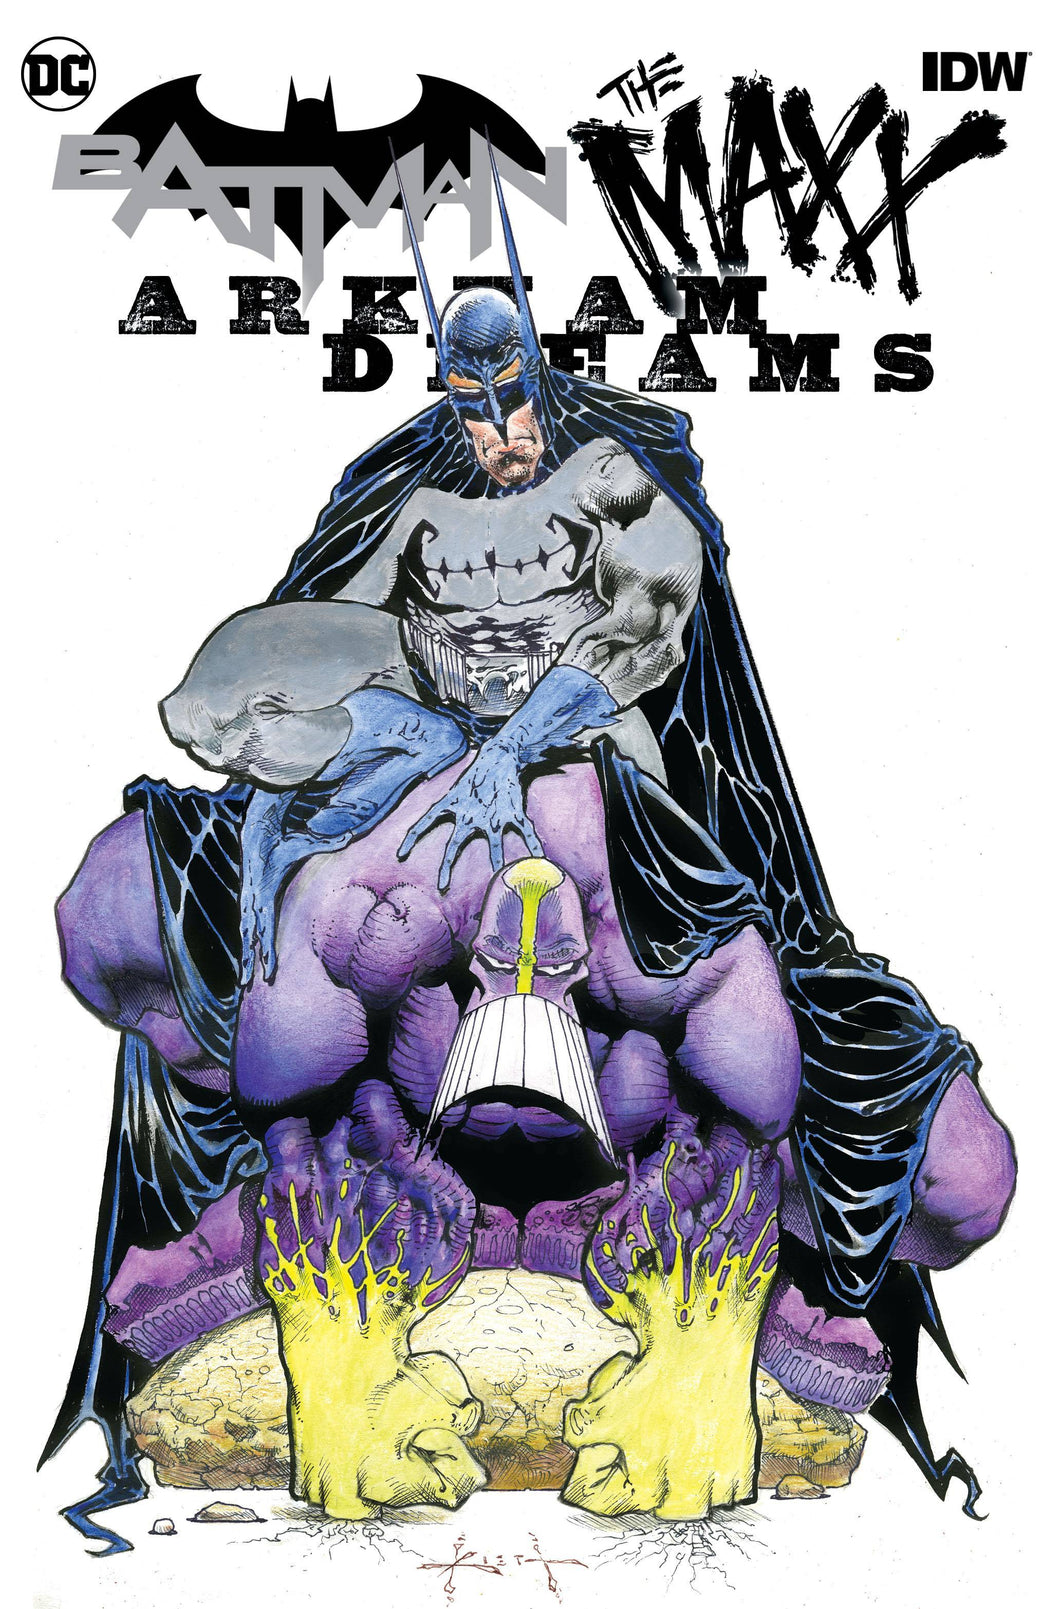 BATMAN THE MAXX #1 (OF 5) ARKHAM DREAMS CVR B KIETH FOC 10/03